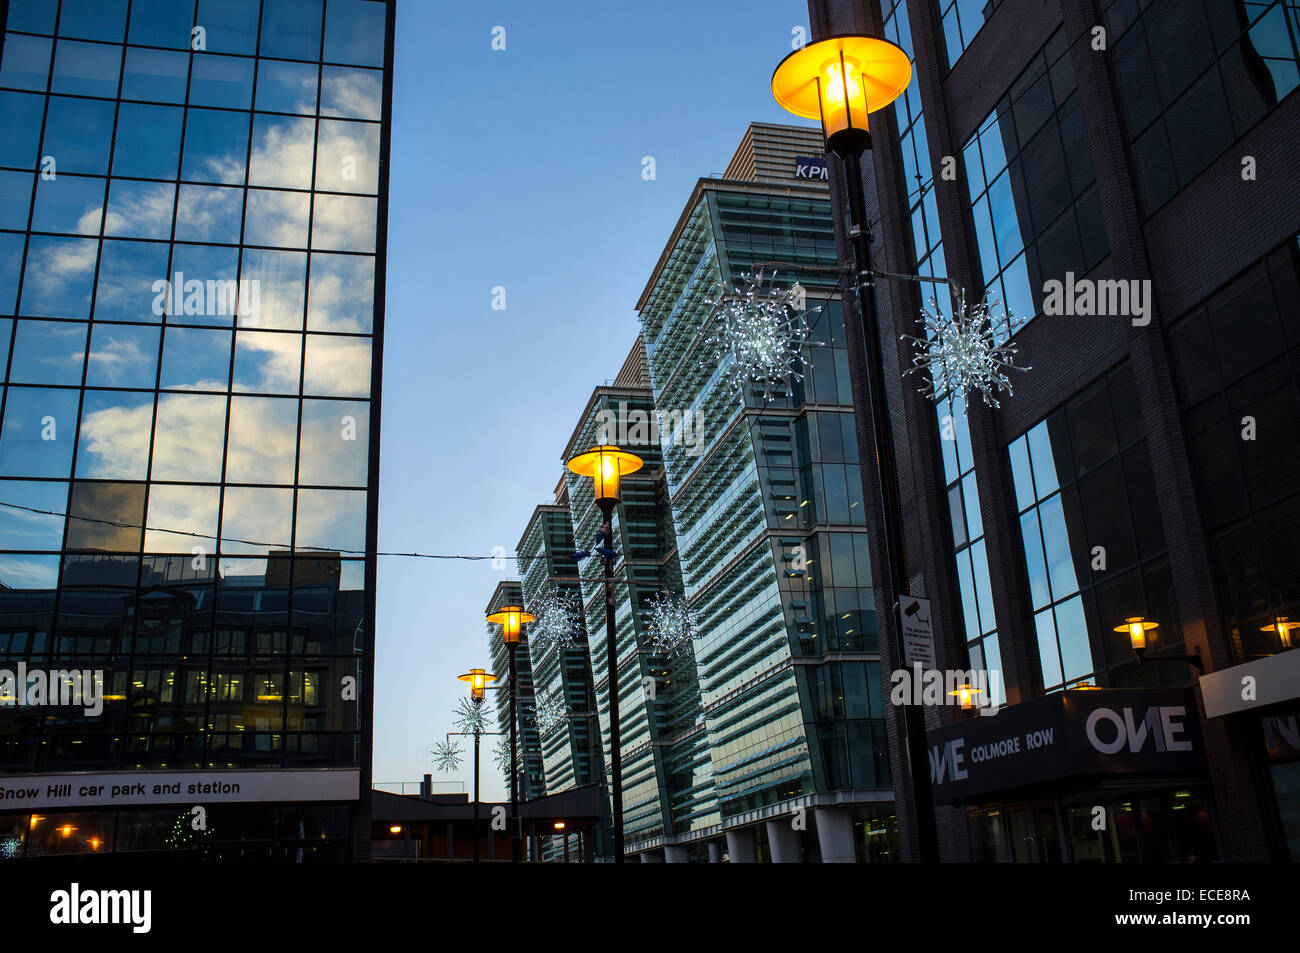 Merry Christmas at Colmore Business District, Snowhill train station Stock Photo